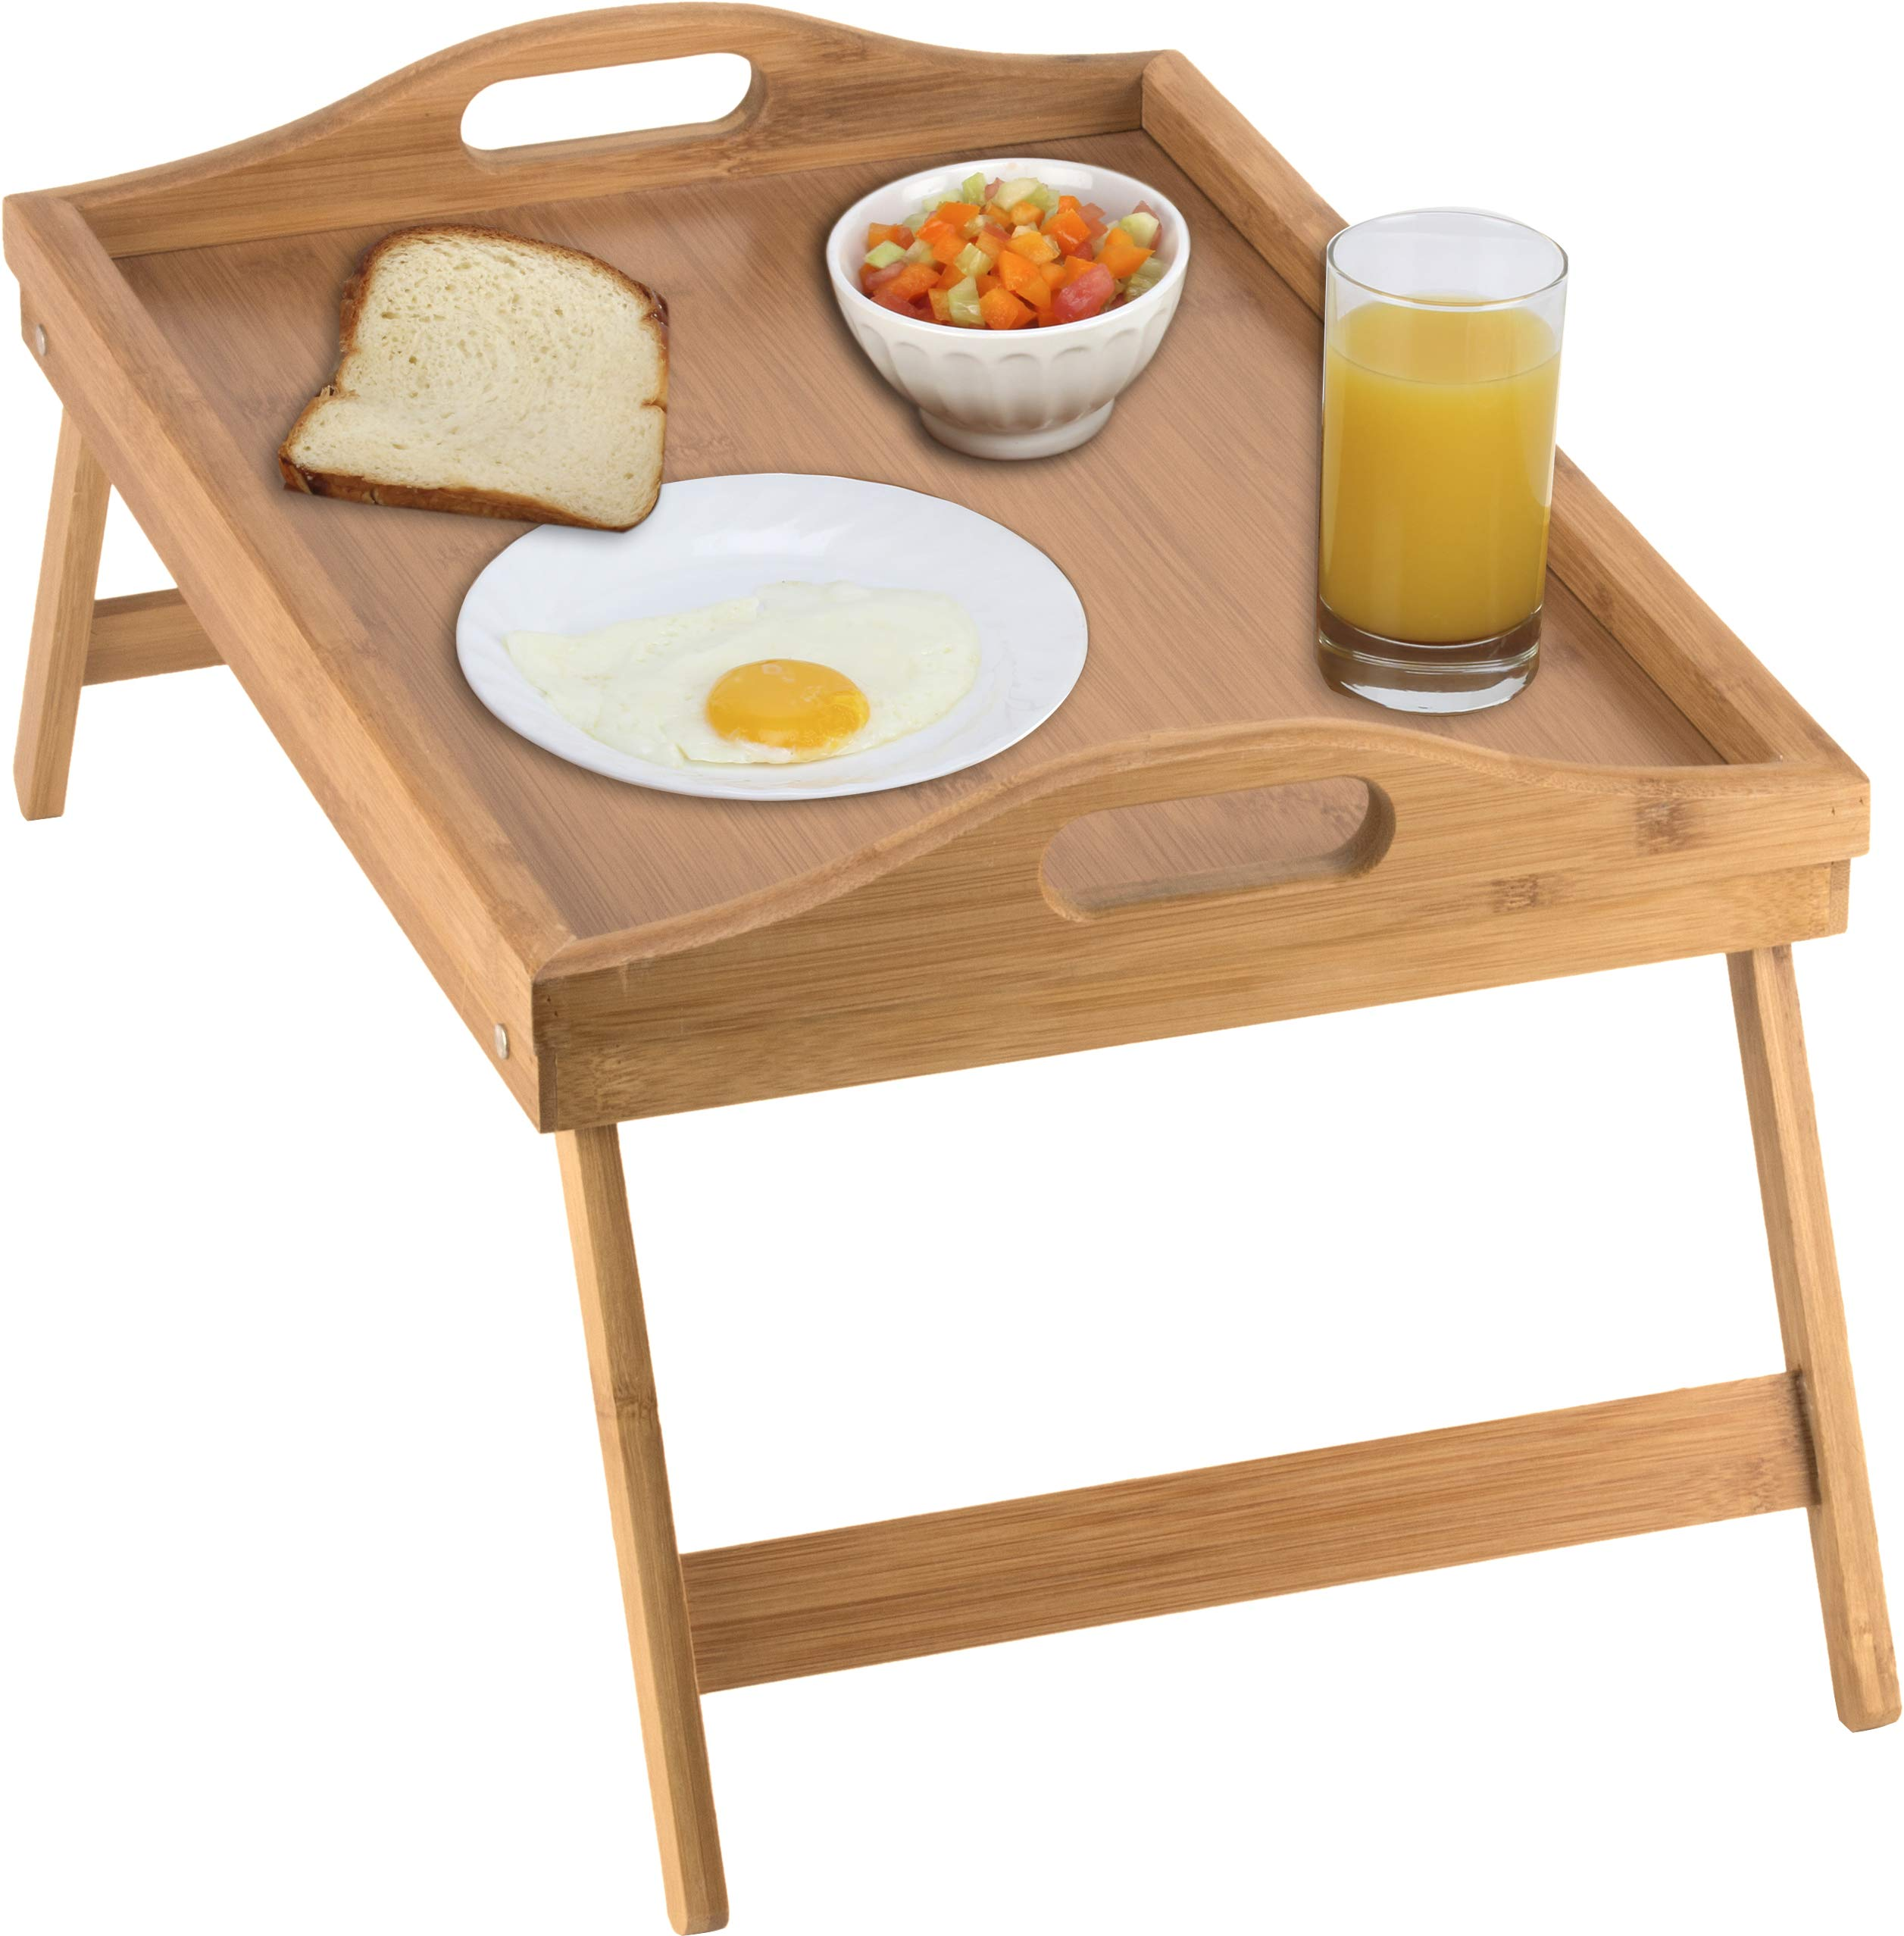 Home-it Bed Tray table with folding legs, and breakfast tray Bamboo bed table and bed tray with legs by Home-it